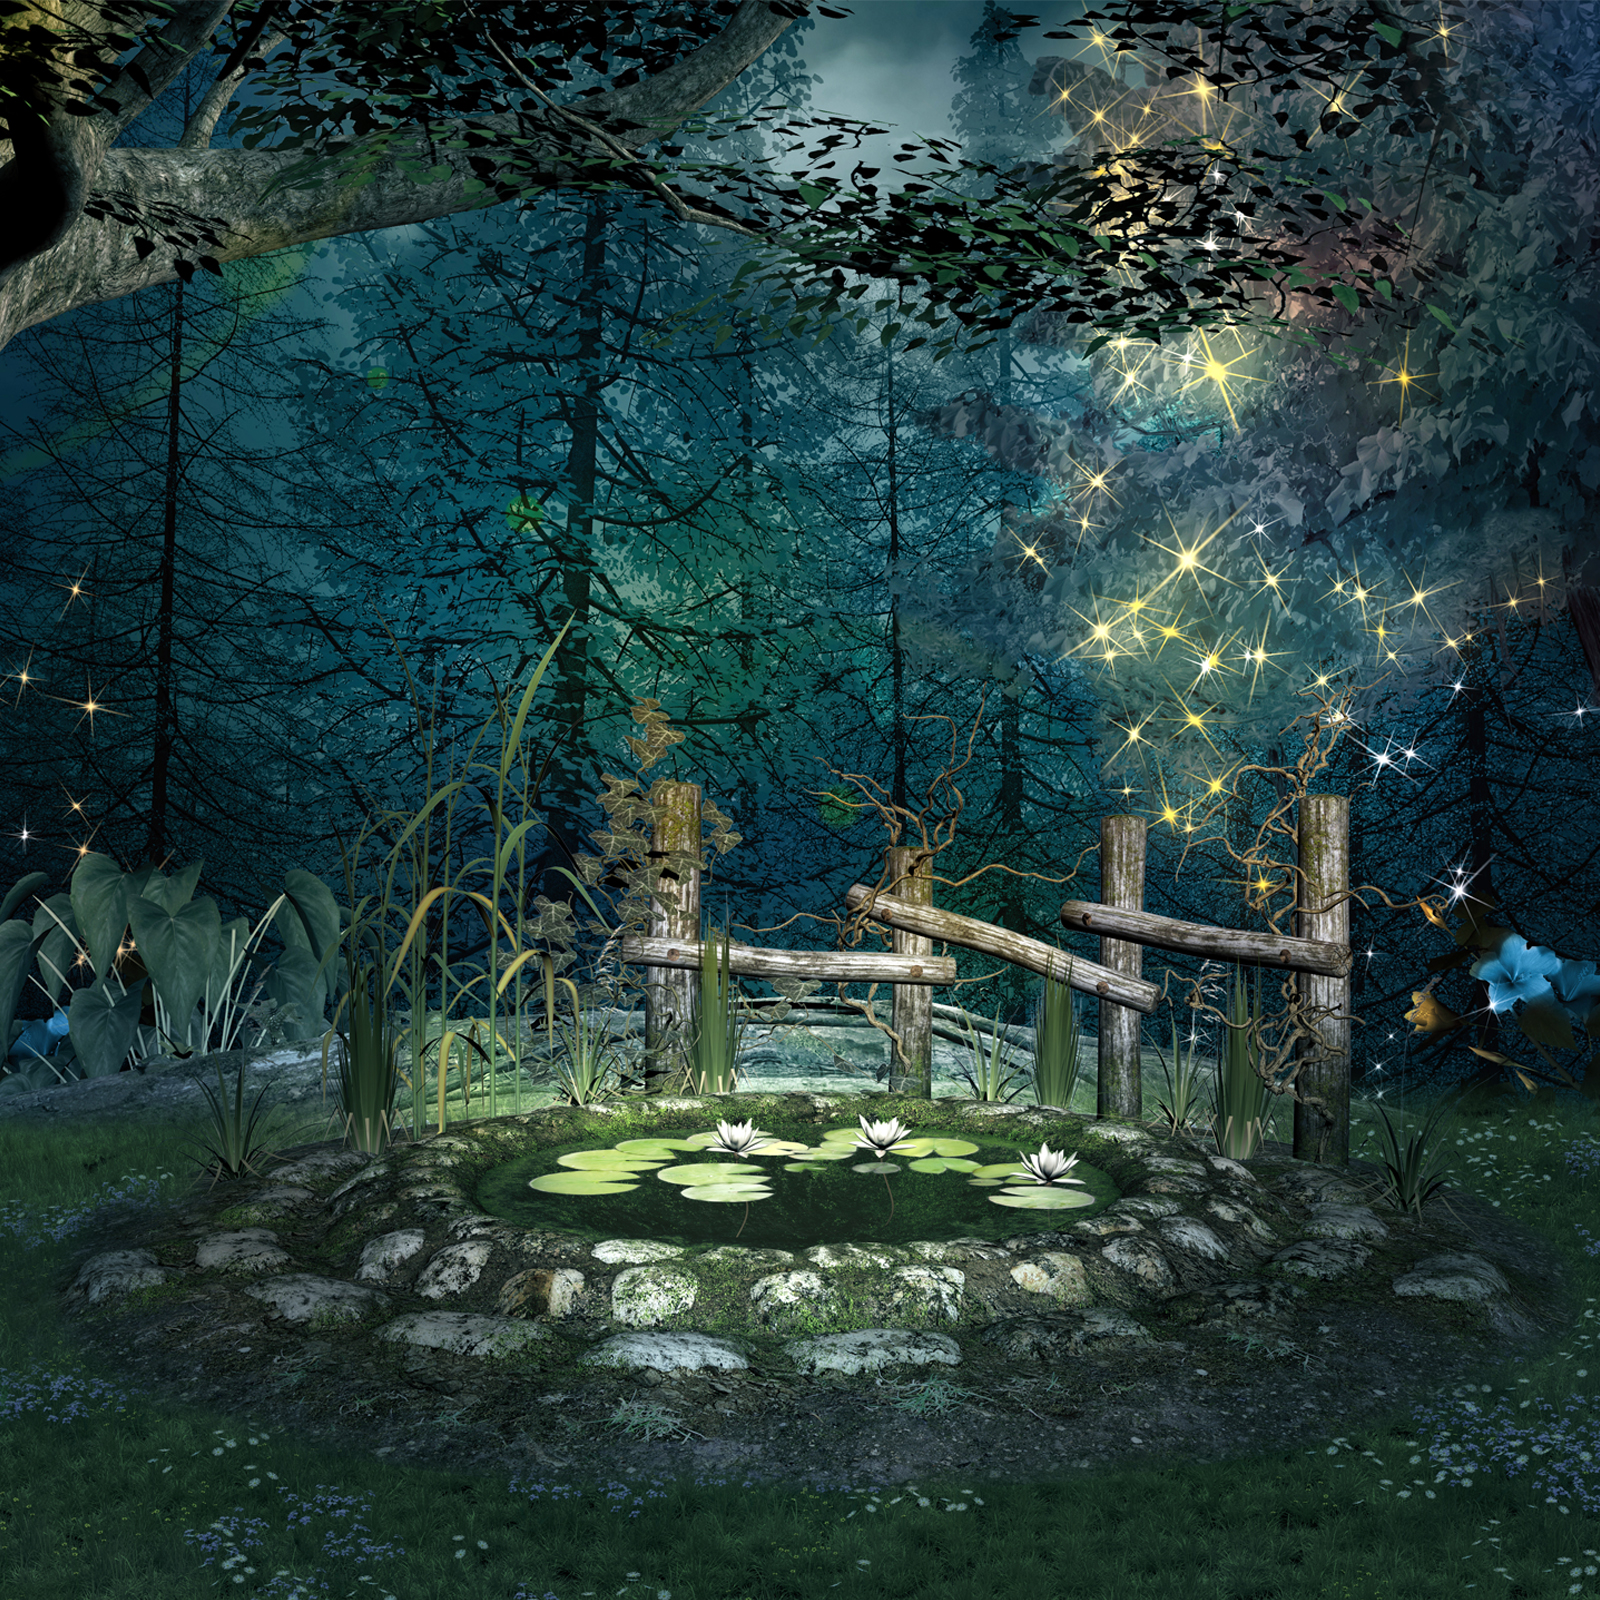 Enchanted Forest Backgrounds 2D Graphics EllerslieArt